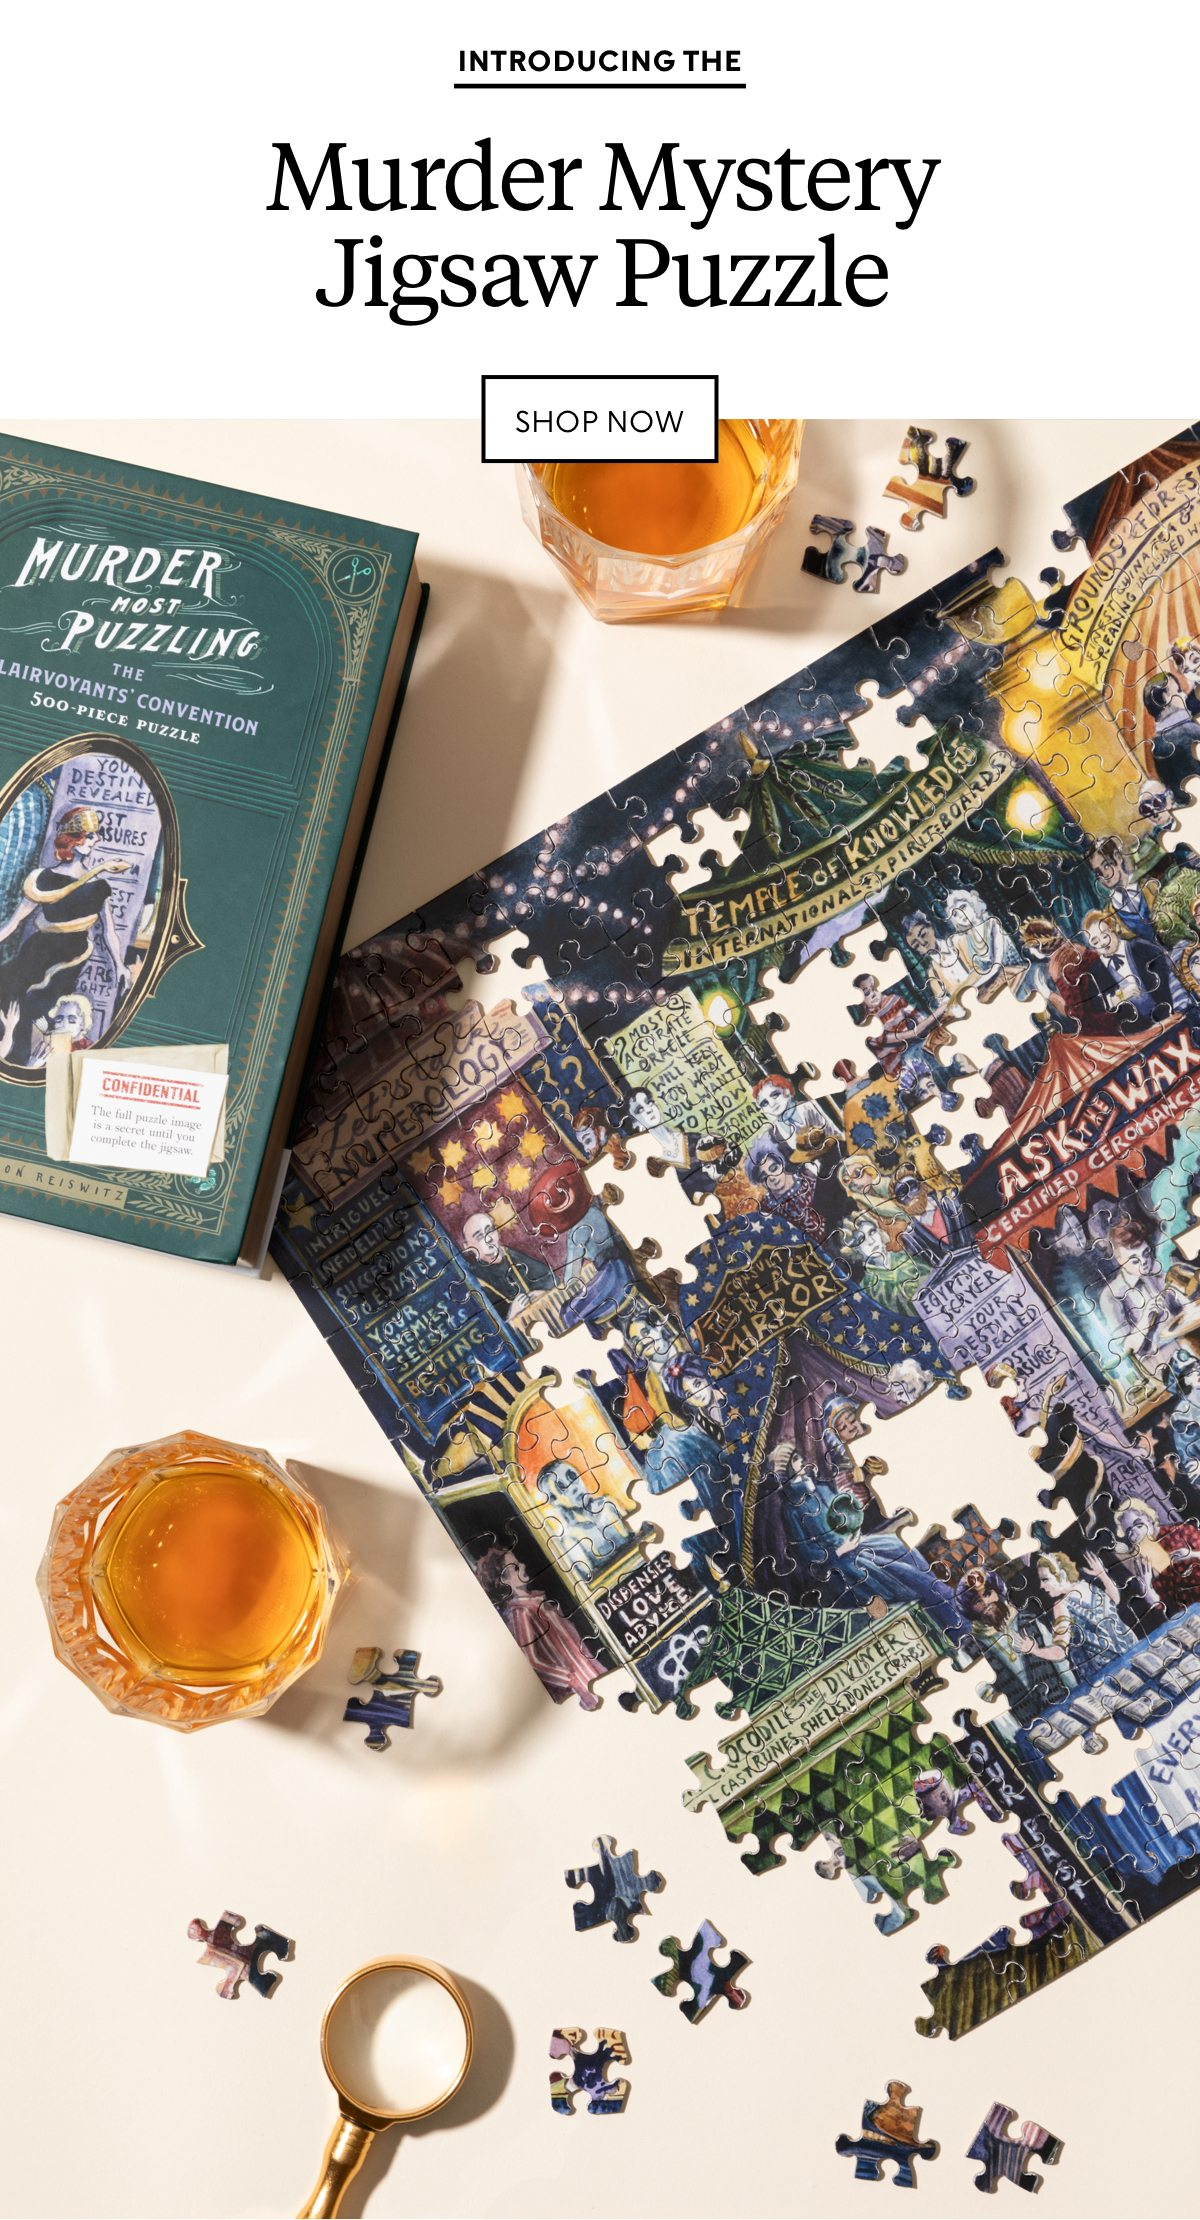 Introducing the Murder Mystery Jigsaw Puzzle. Shop now.